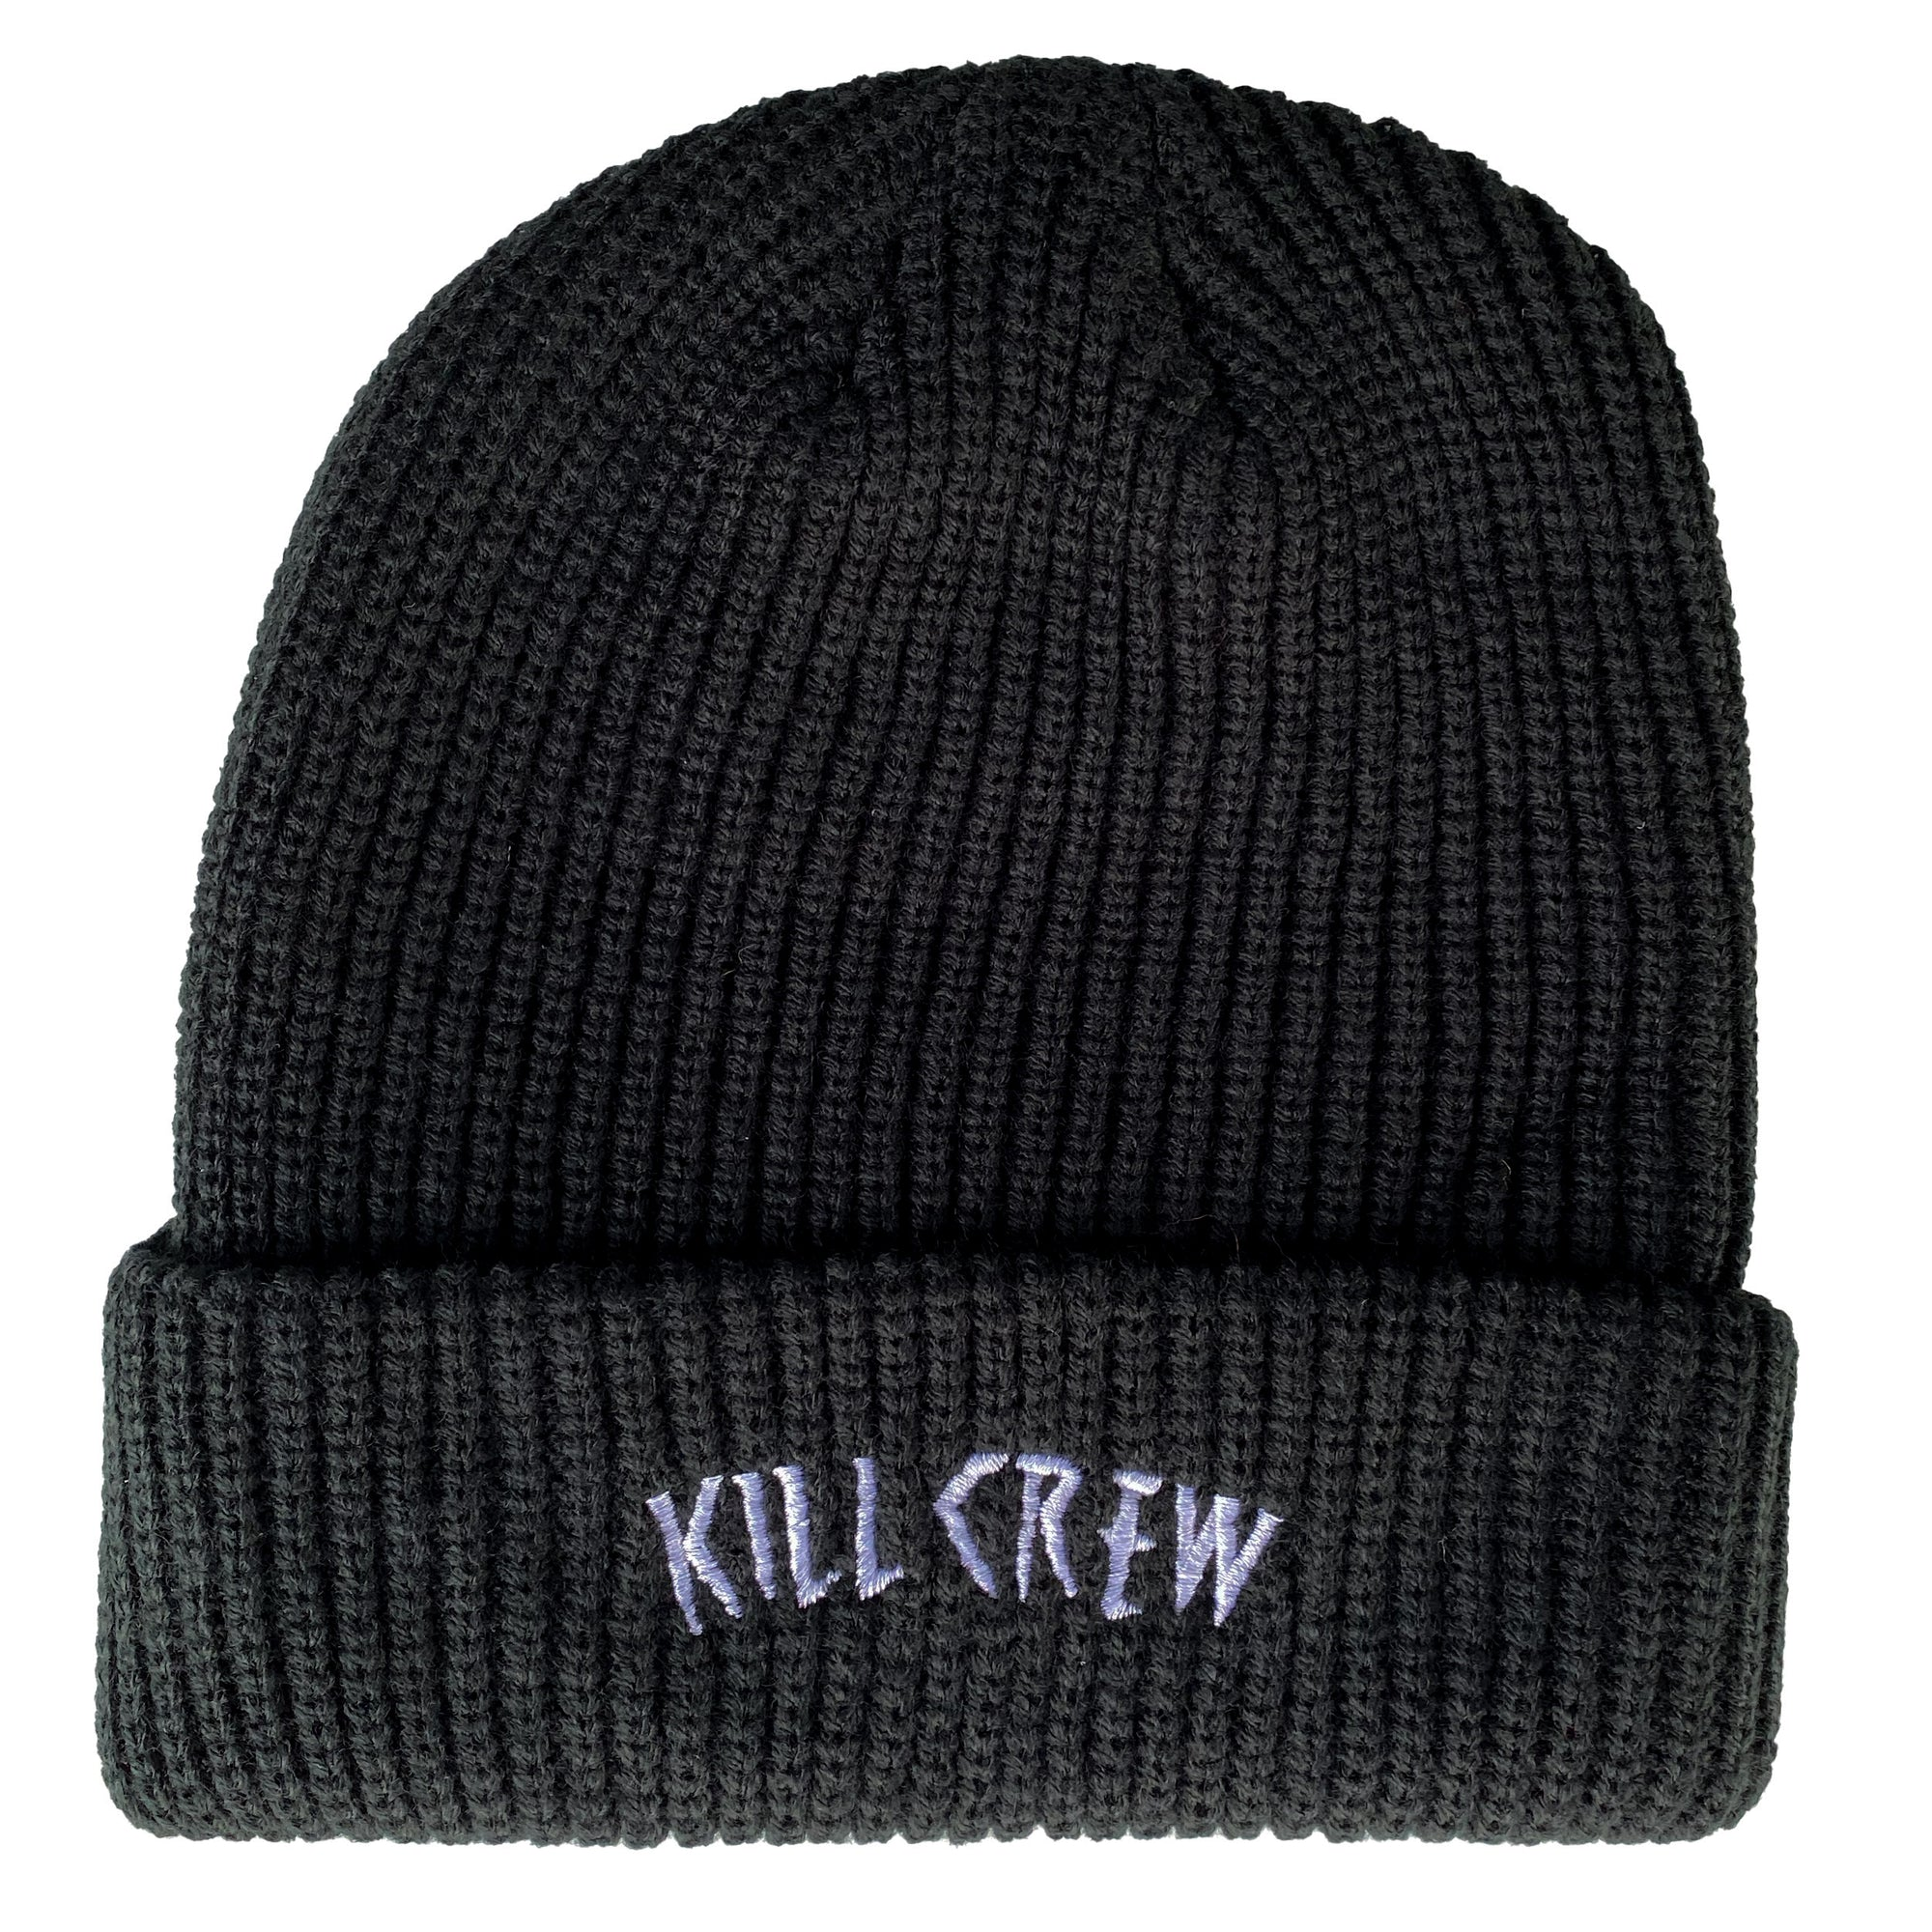 EMBROIDERED CUFFED BEANIE - BLACK